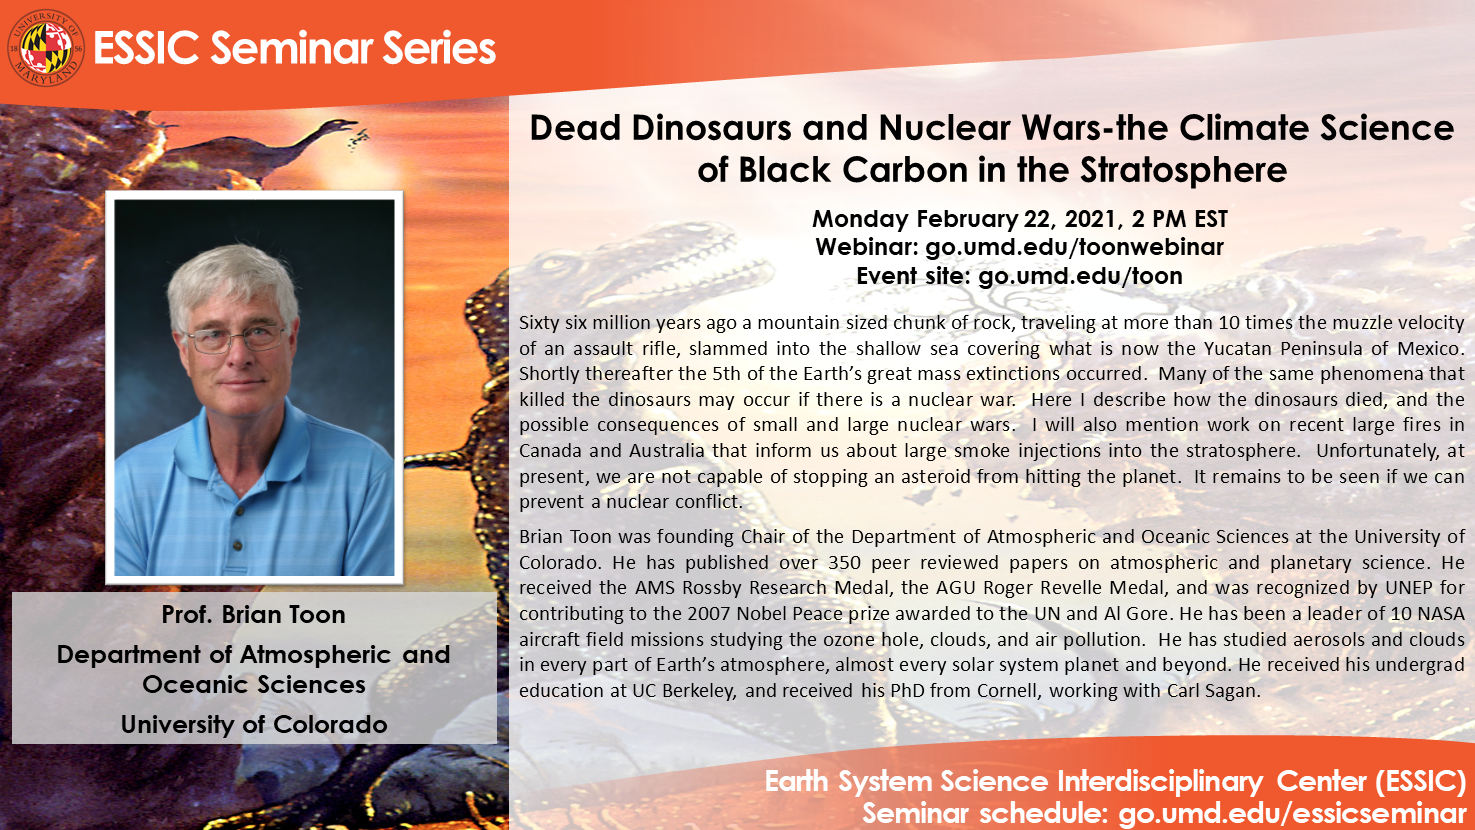 The seminar flyer for Dr. Toon. All text is identical to that on the page